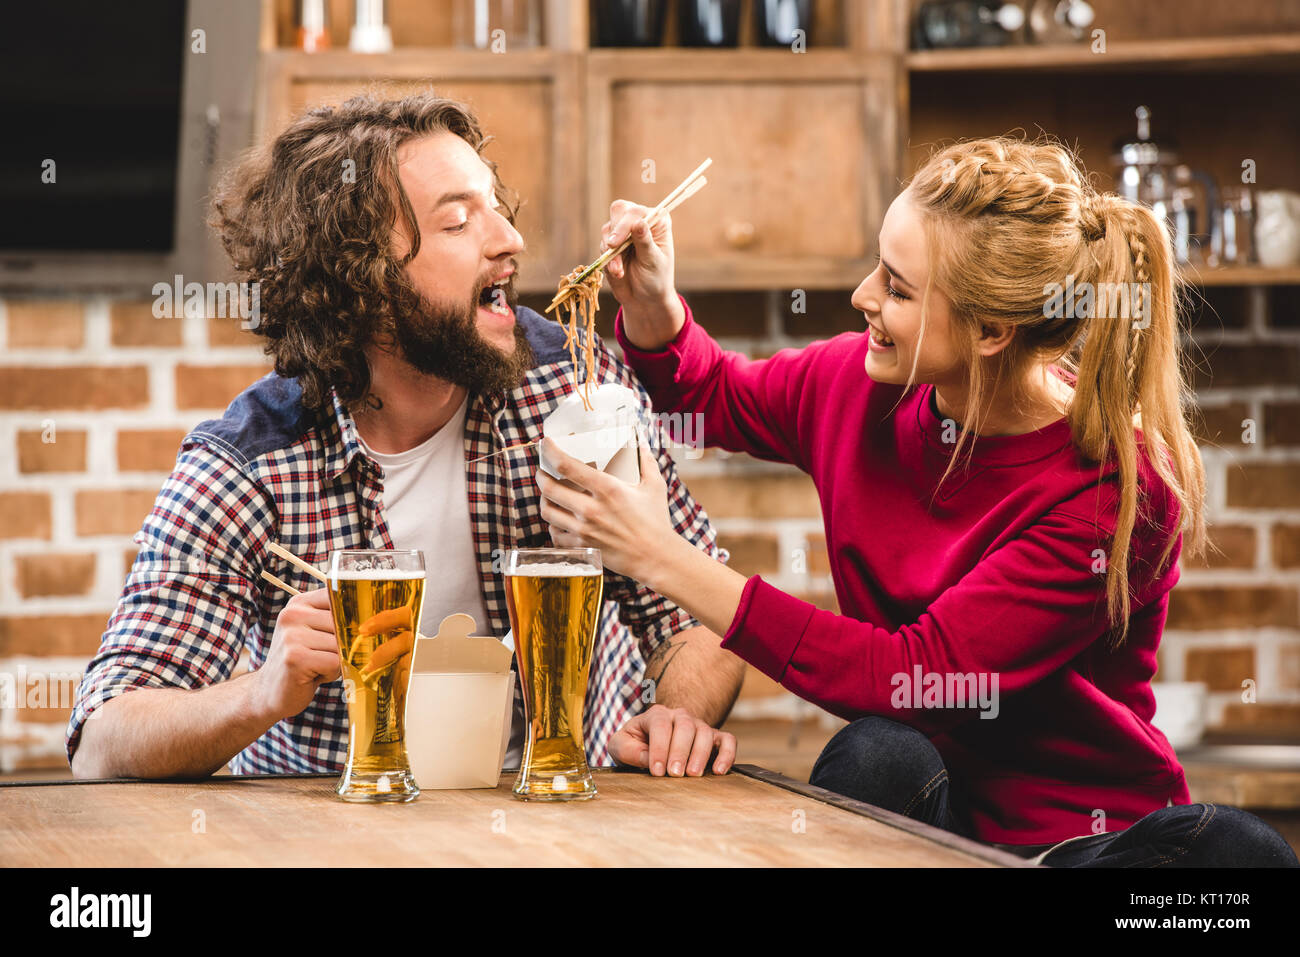 Couple eating noodles - Stock Image